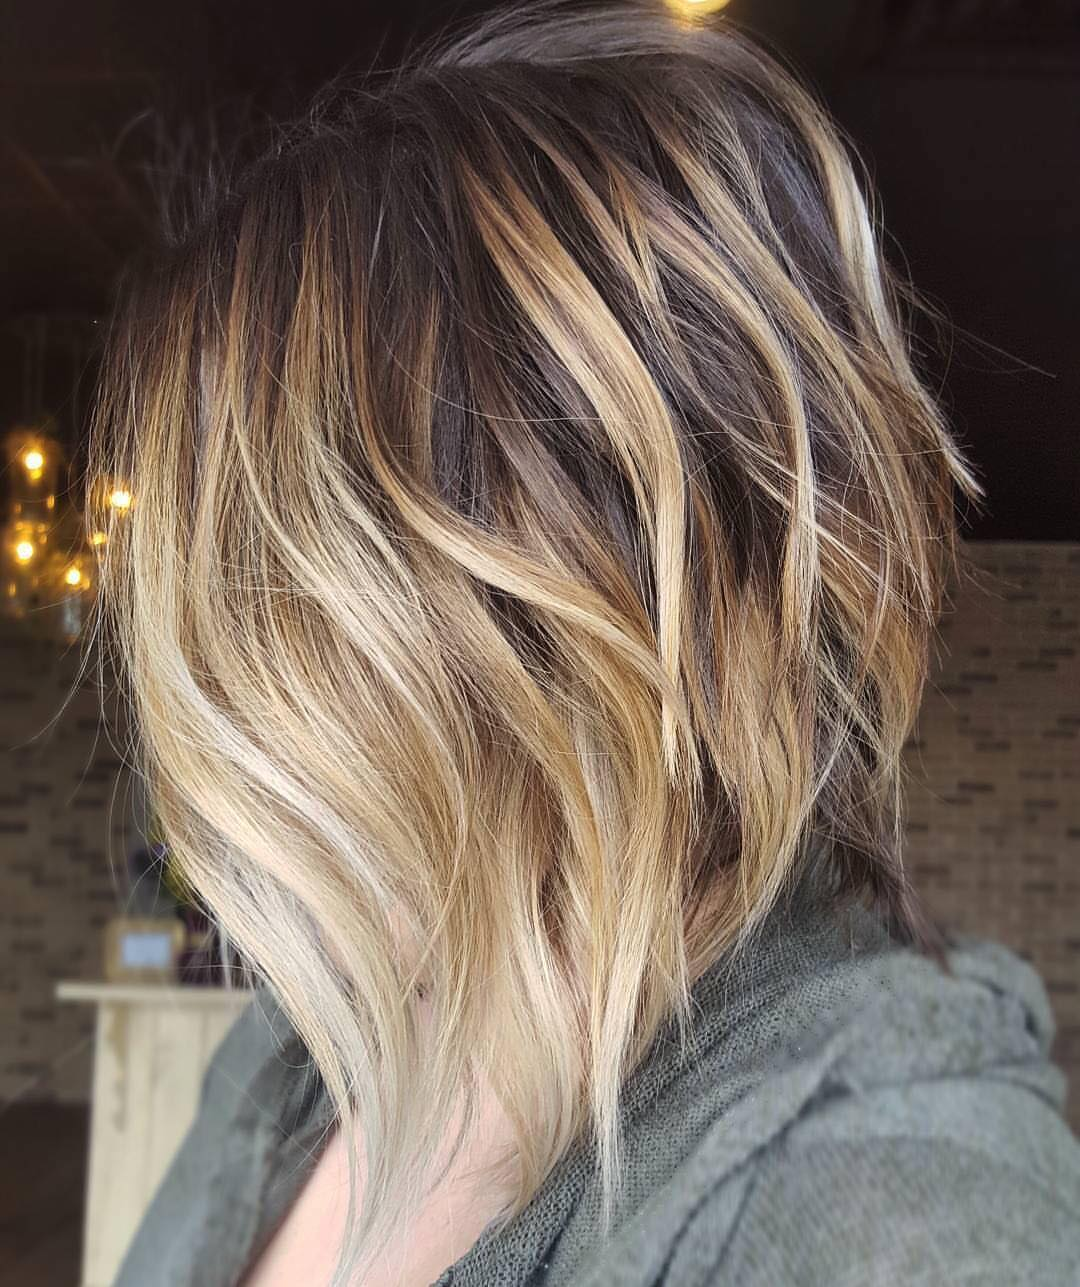 10 cute medium hairstyles with gorgeous color twists - medium